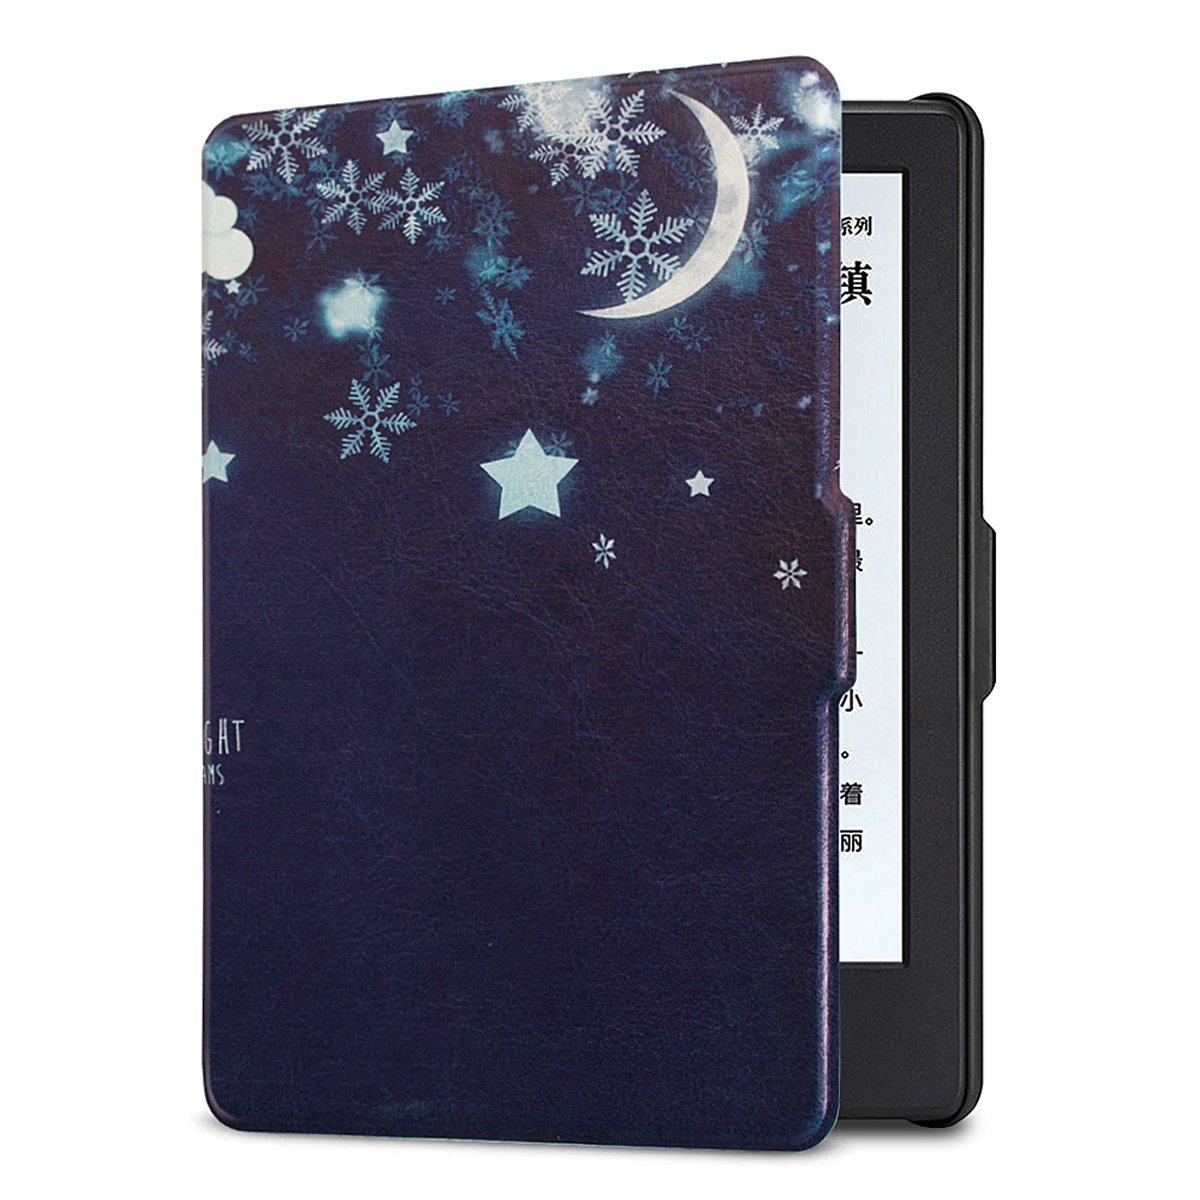 ISeeSee  Case for Kindle Paperwhite - The Thinnest and Lightest PU Leather Cover Auto Sleep/Wake for All-New Amazon Kindle Paperwhite (Fits All 2012, 2013, 2015 and 2016 Versions),Good Night